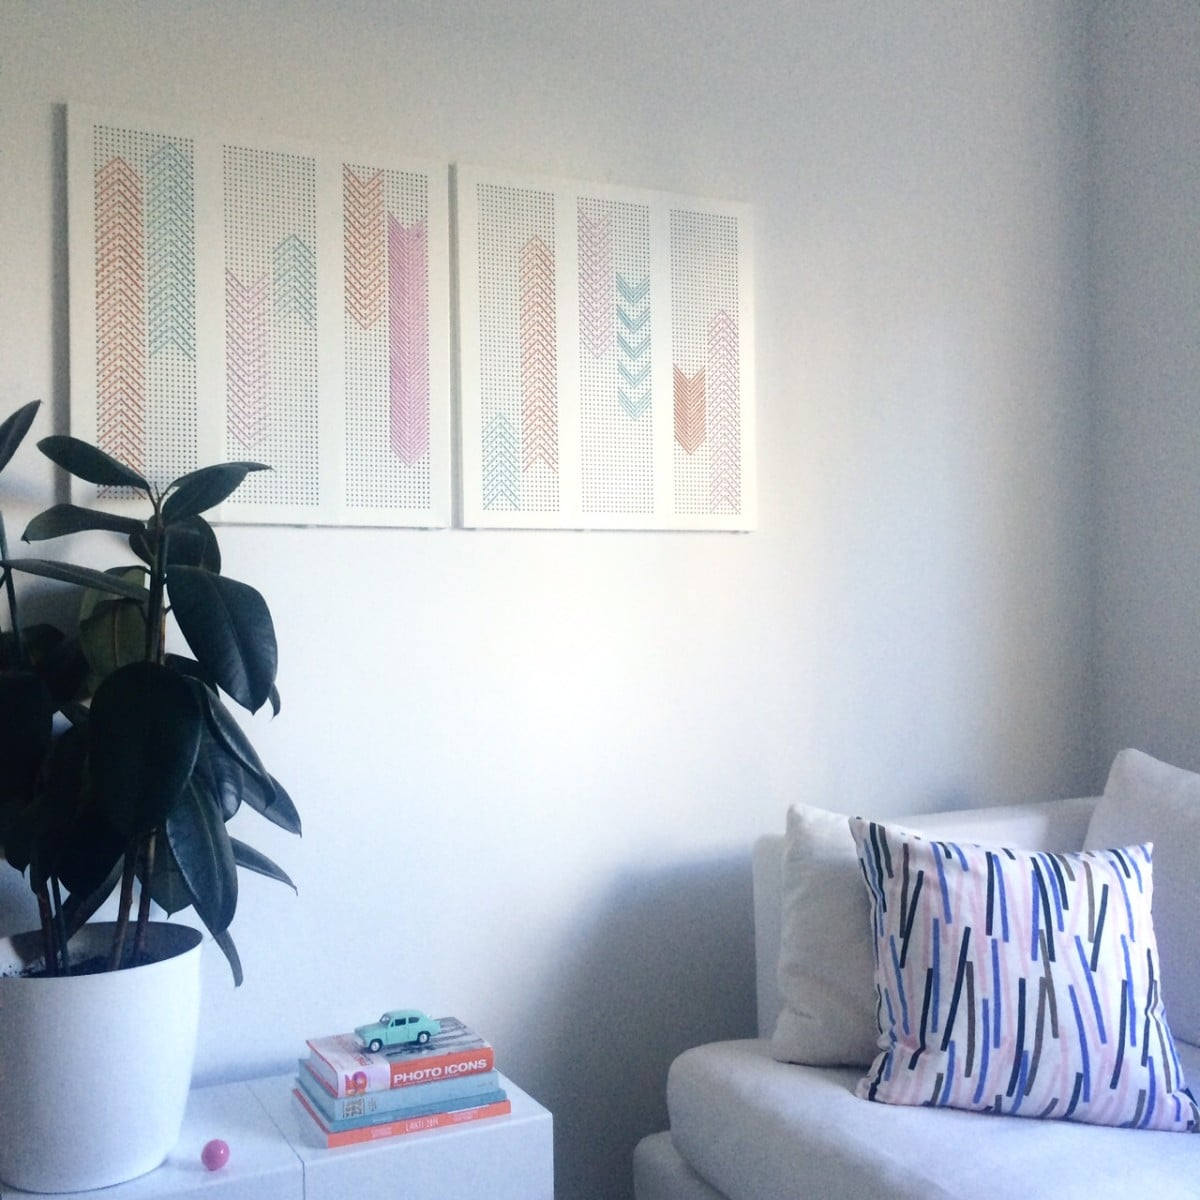 Broken ALGOT Shelf To Wall Art For Living Room